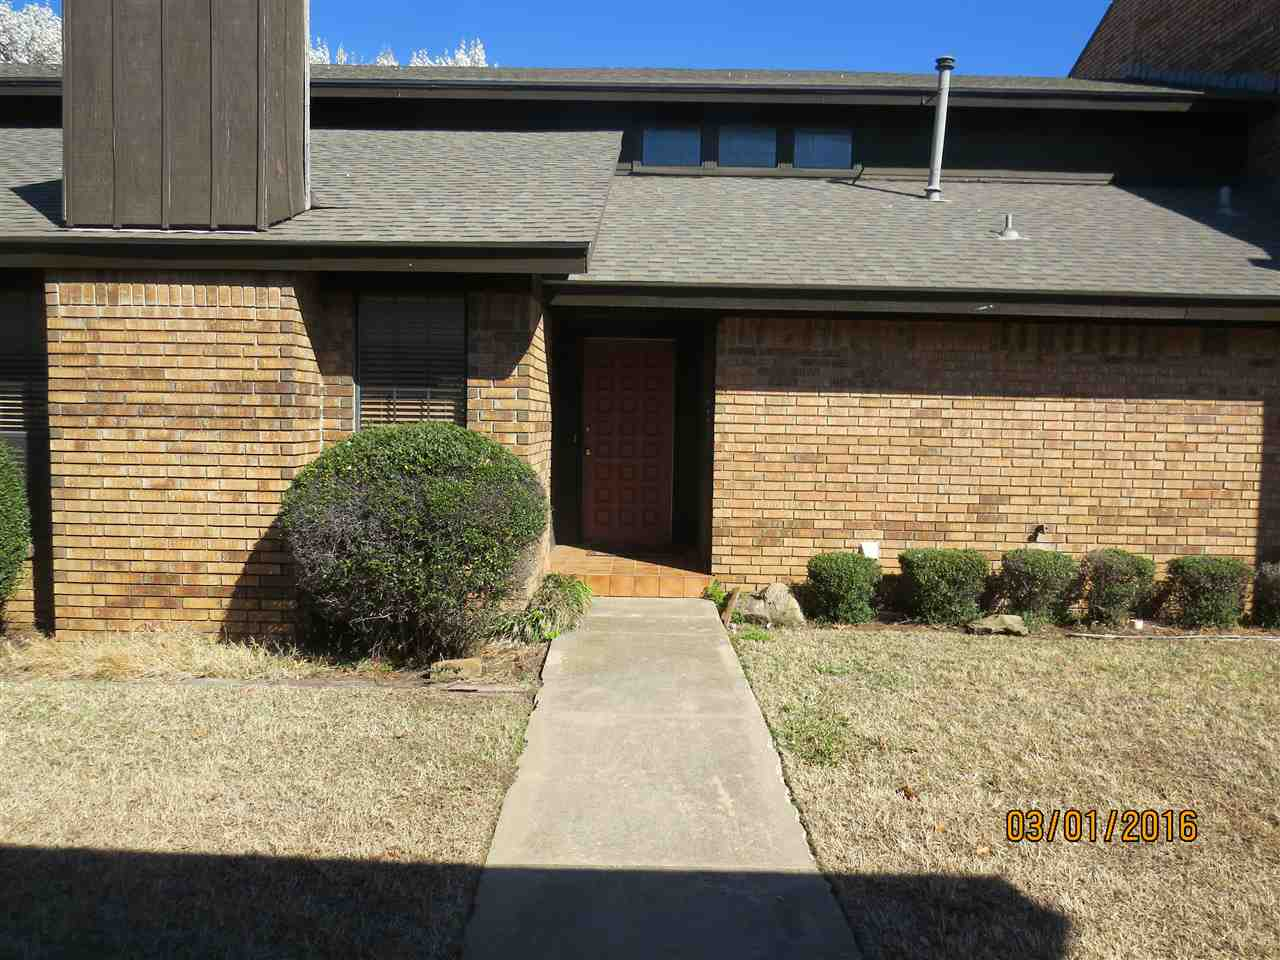 27A Overland Route St, Ardmore, OK 73401